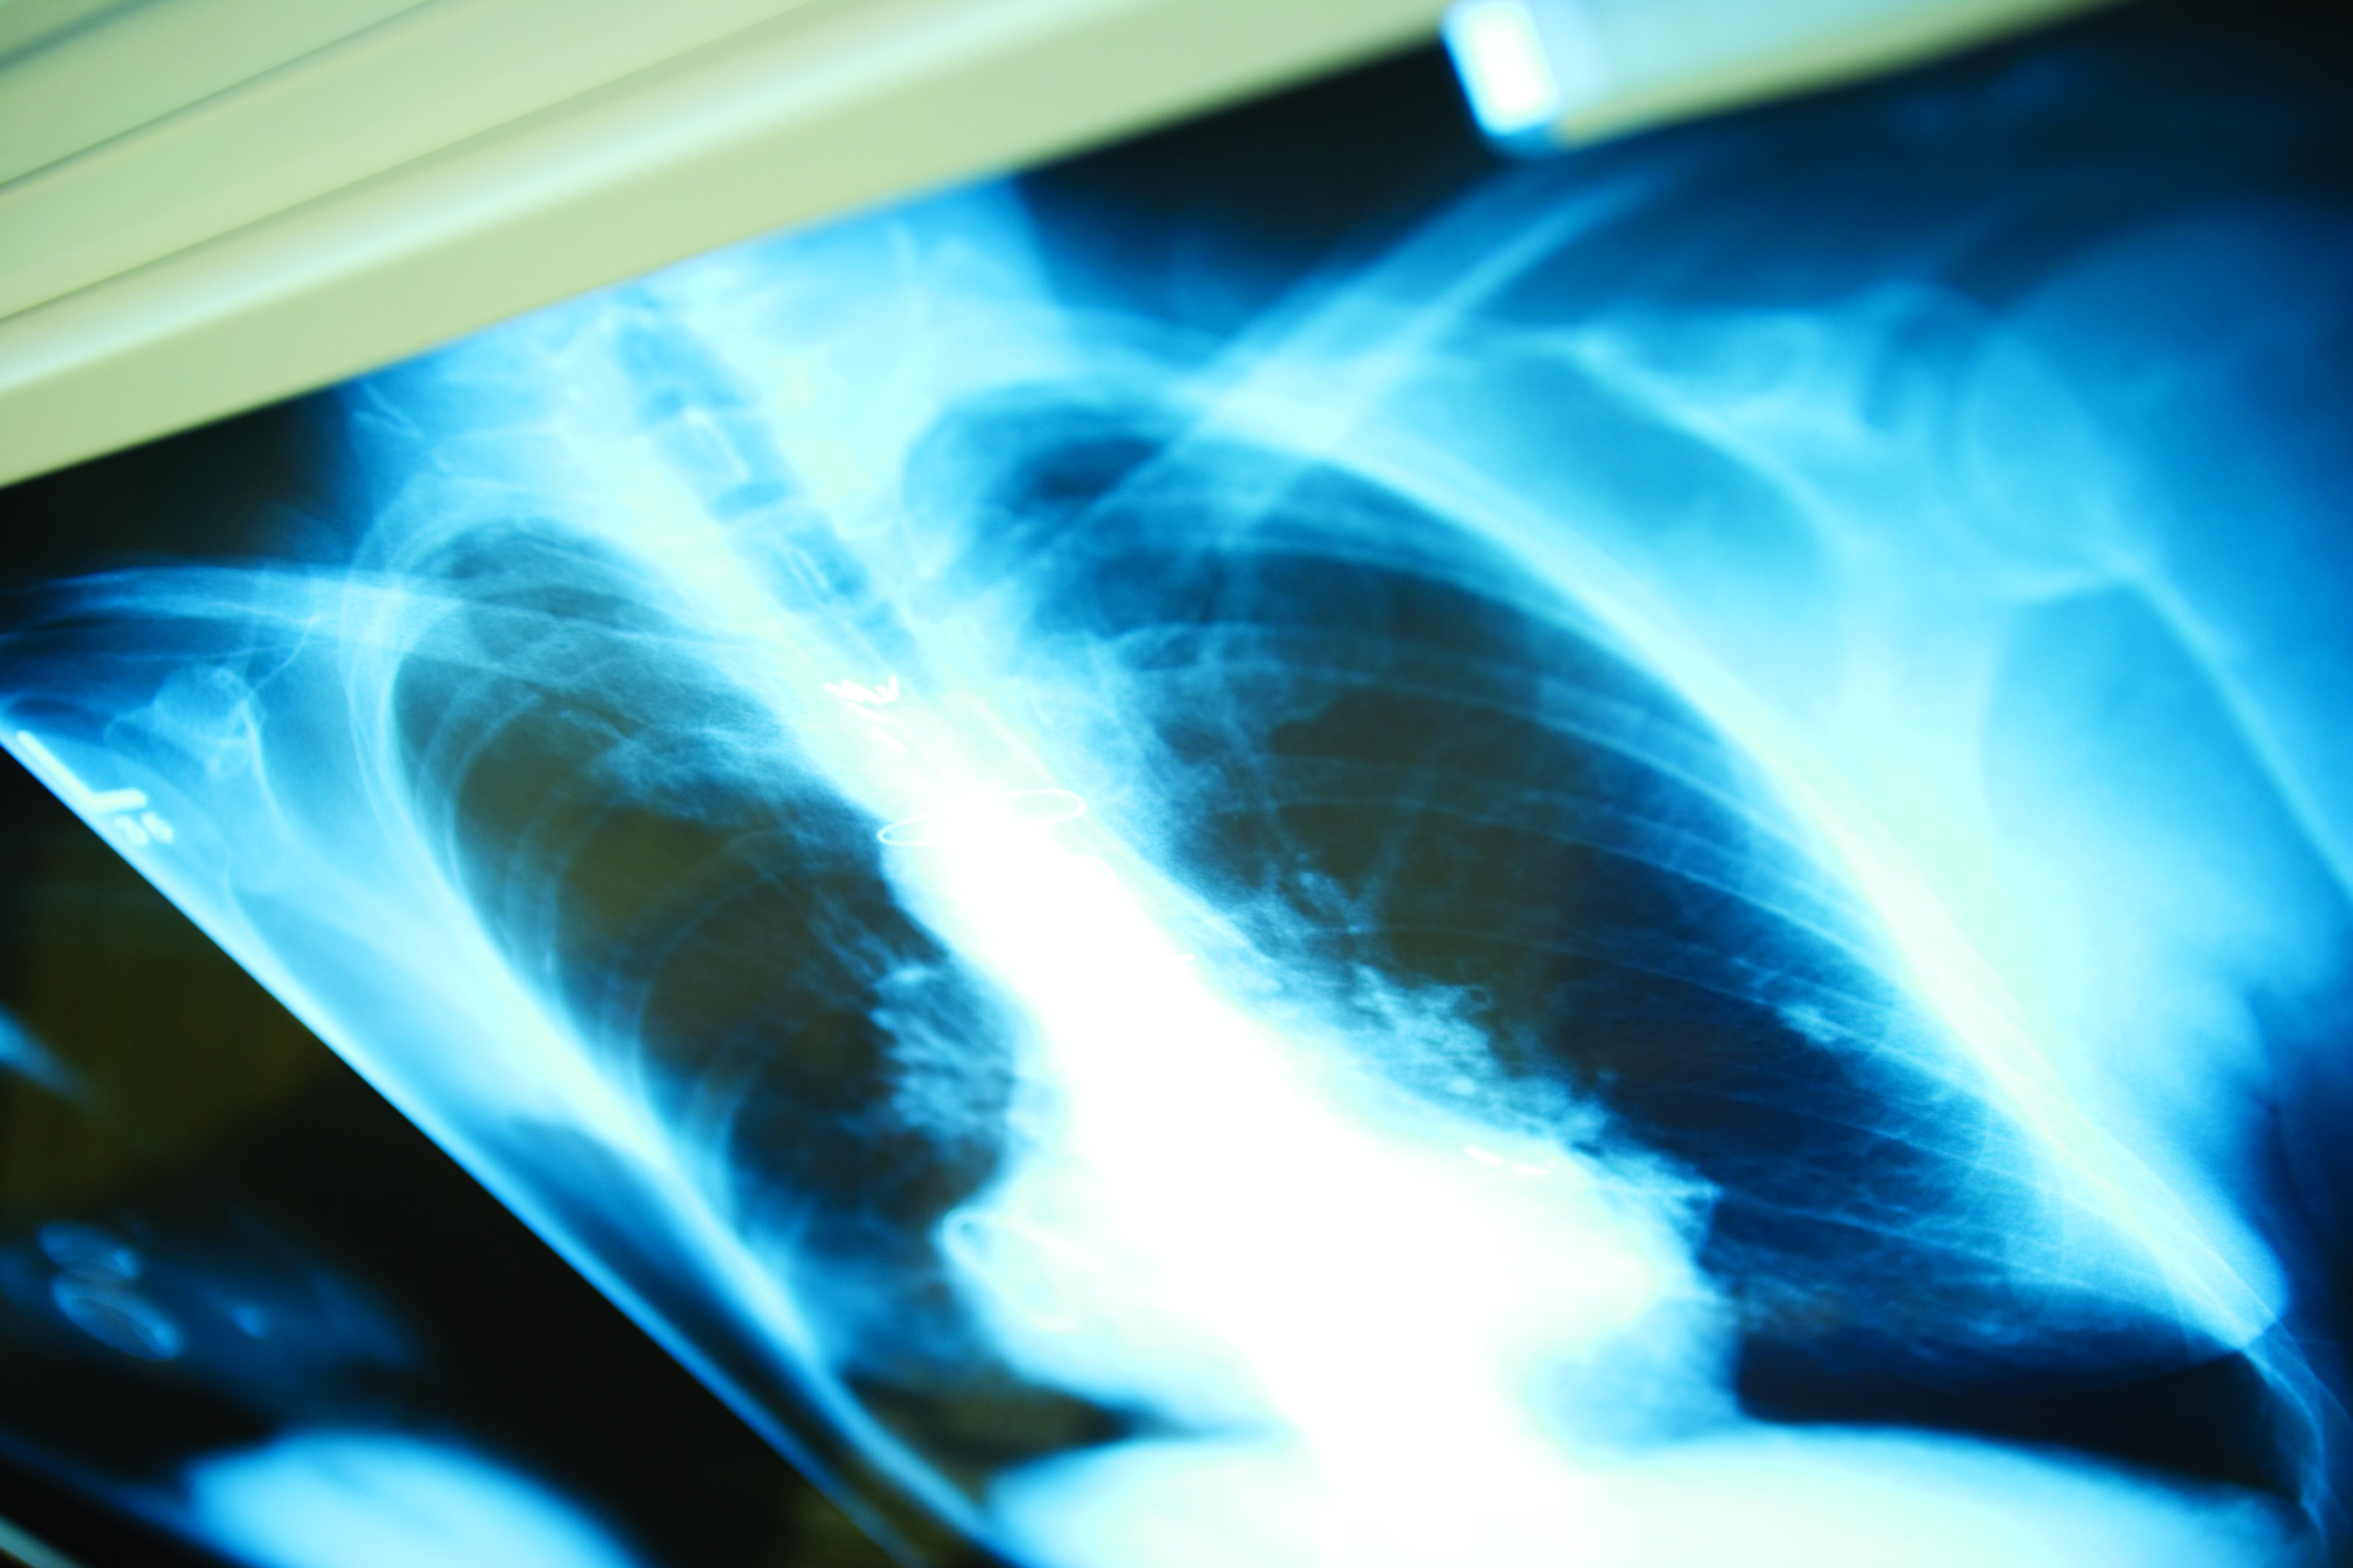 Pulmonology Division to Treat Lung Disease and Sleep Disorders